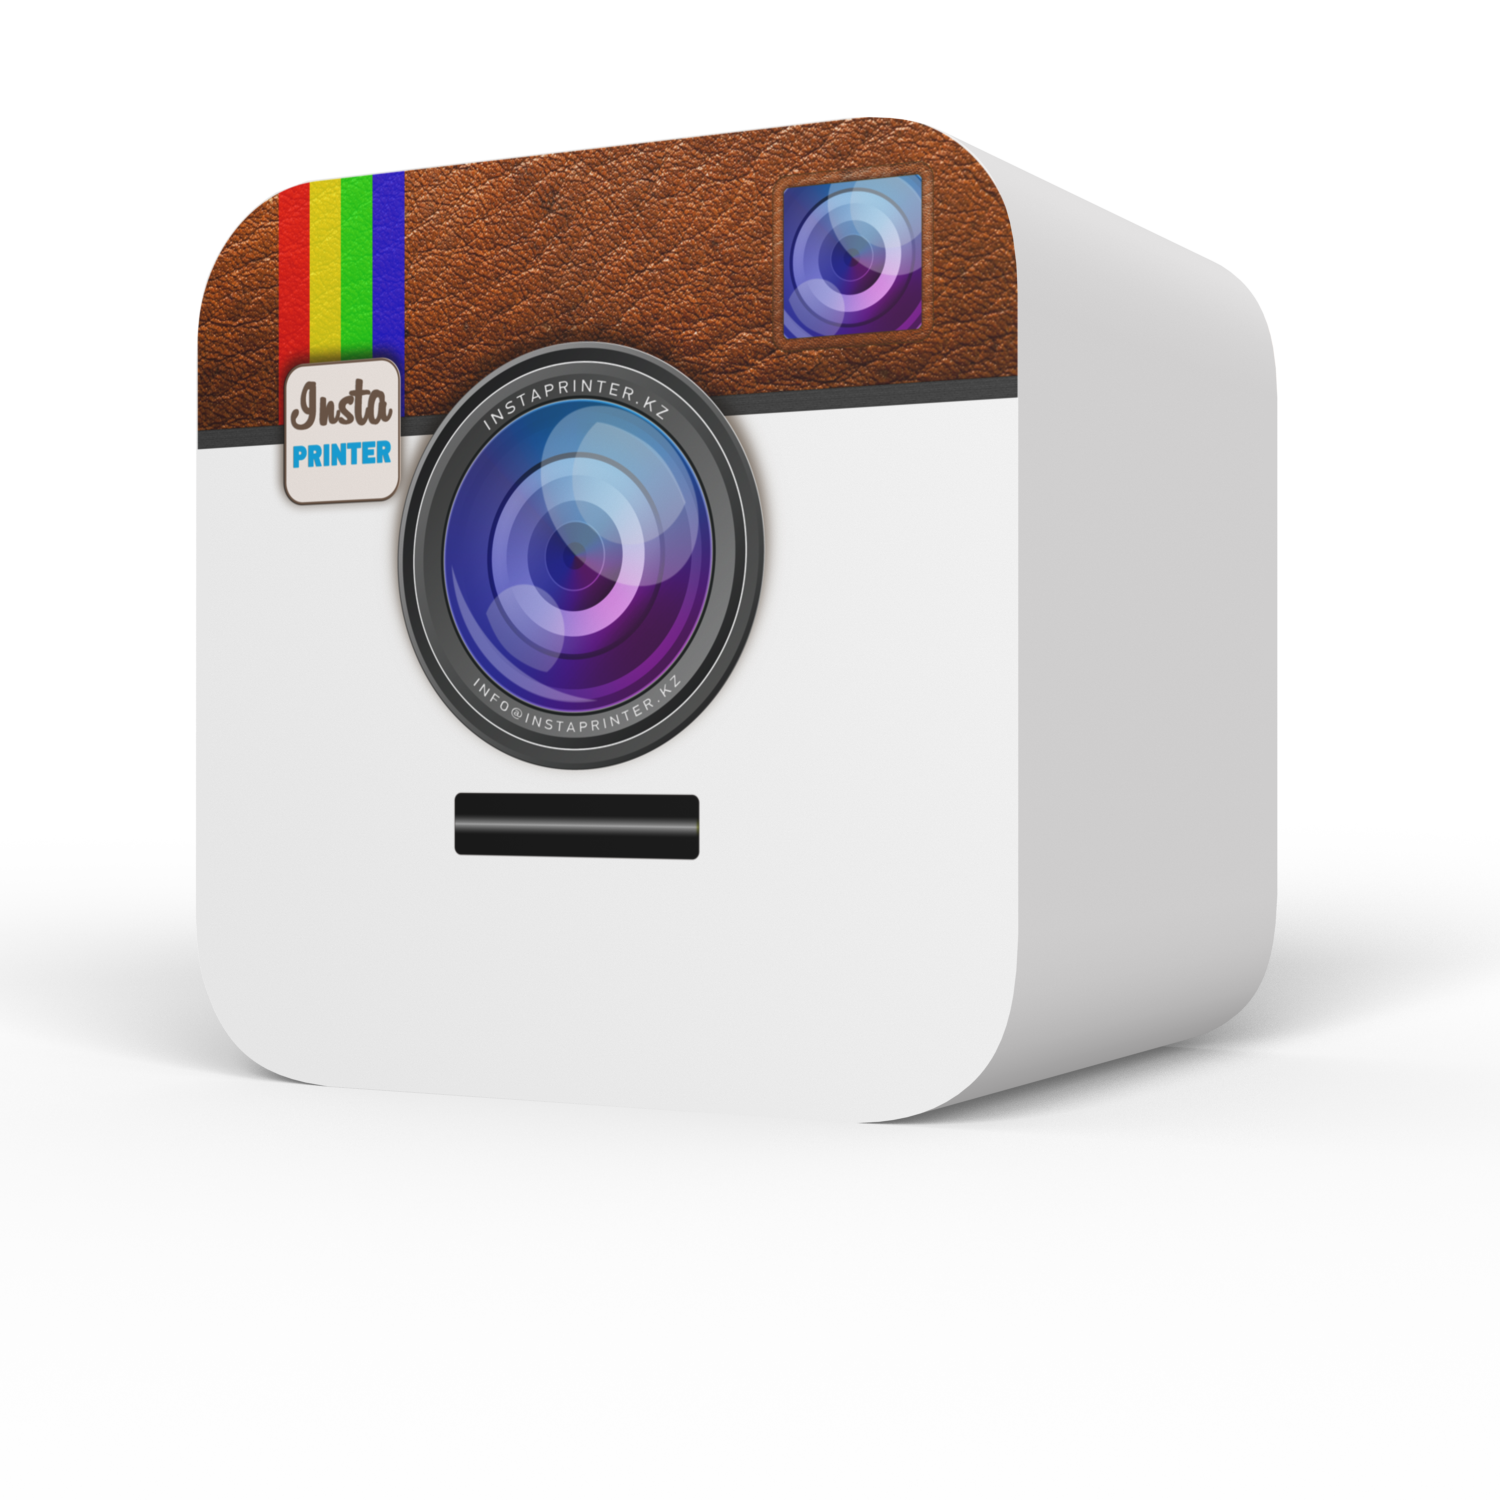 Interactivity Kinect Photography Printer Instagram Free Download Image PNG Image